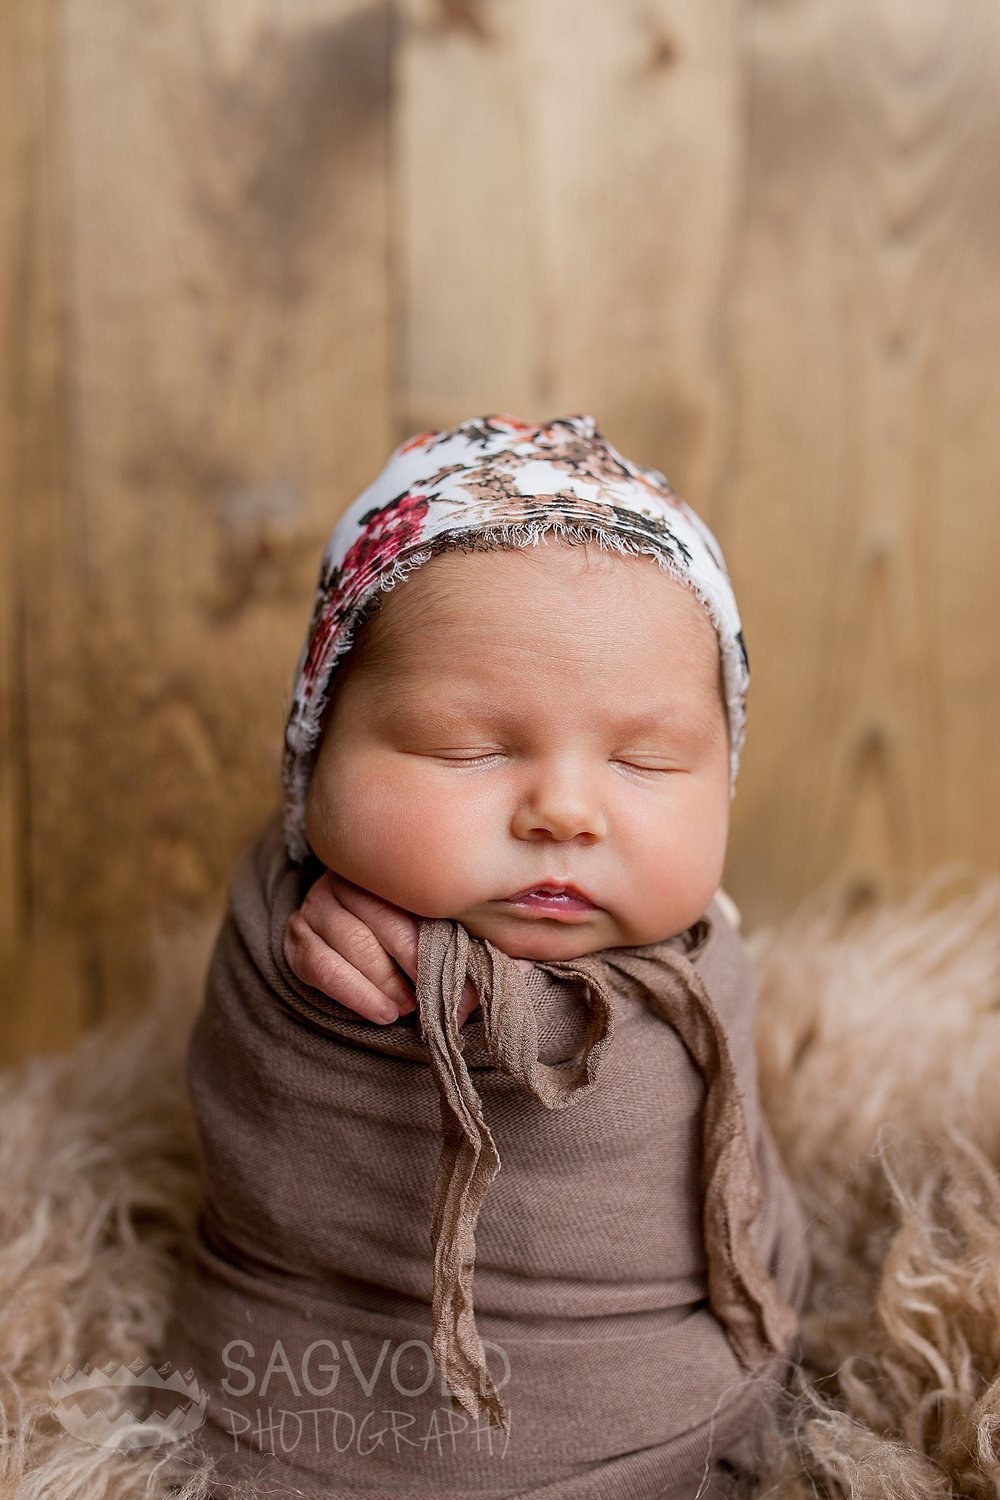 Newborn potato sack pose Fargo ND newborn photographer Janna Sagvold Photography